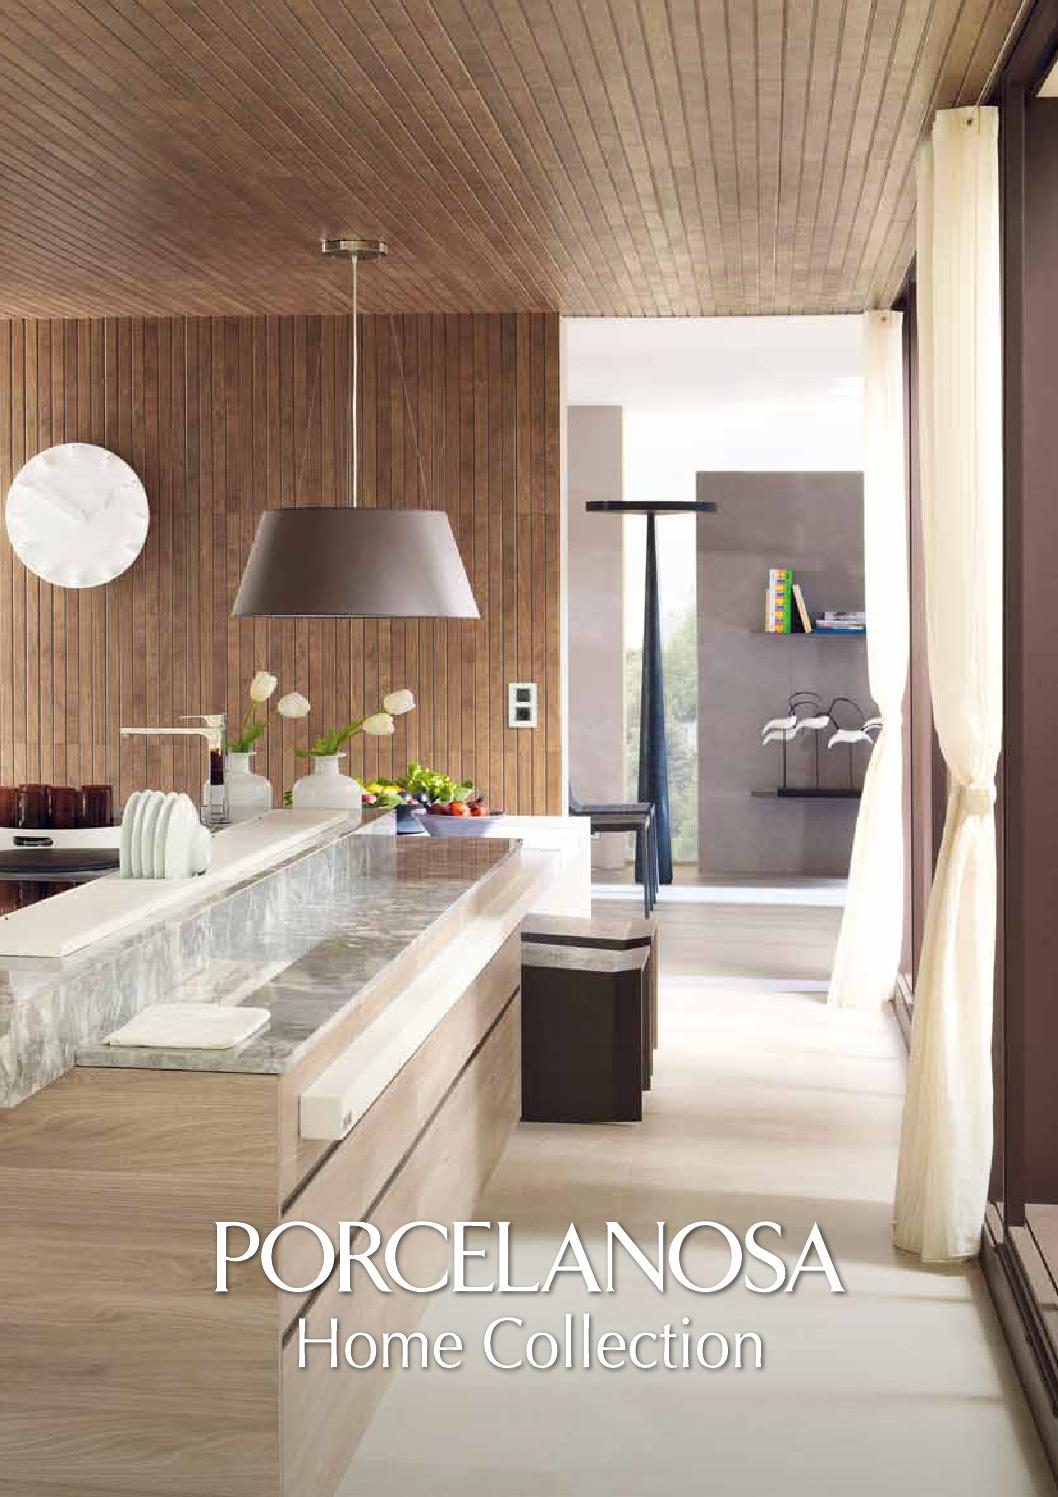 Porcelanosa Catalogo Baños Catalogo Porcelanosa By Misfolletos Misfolletos Issuu